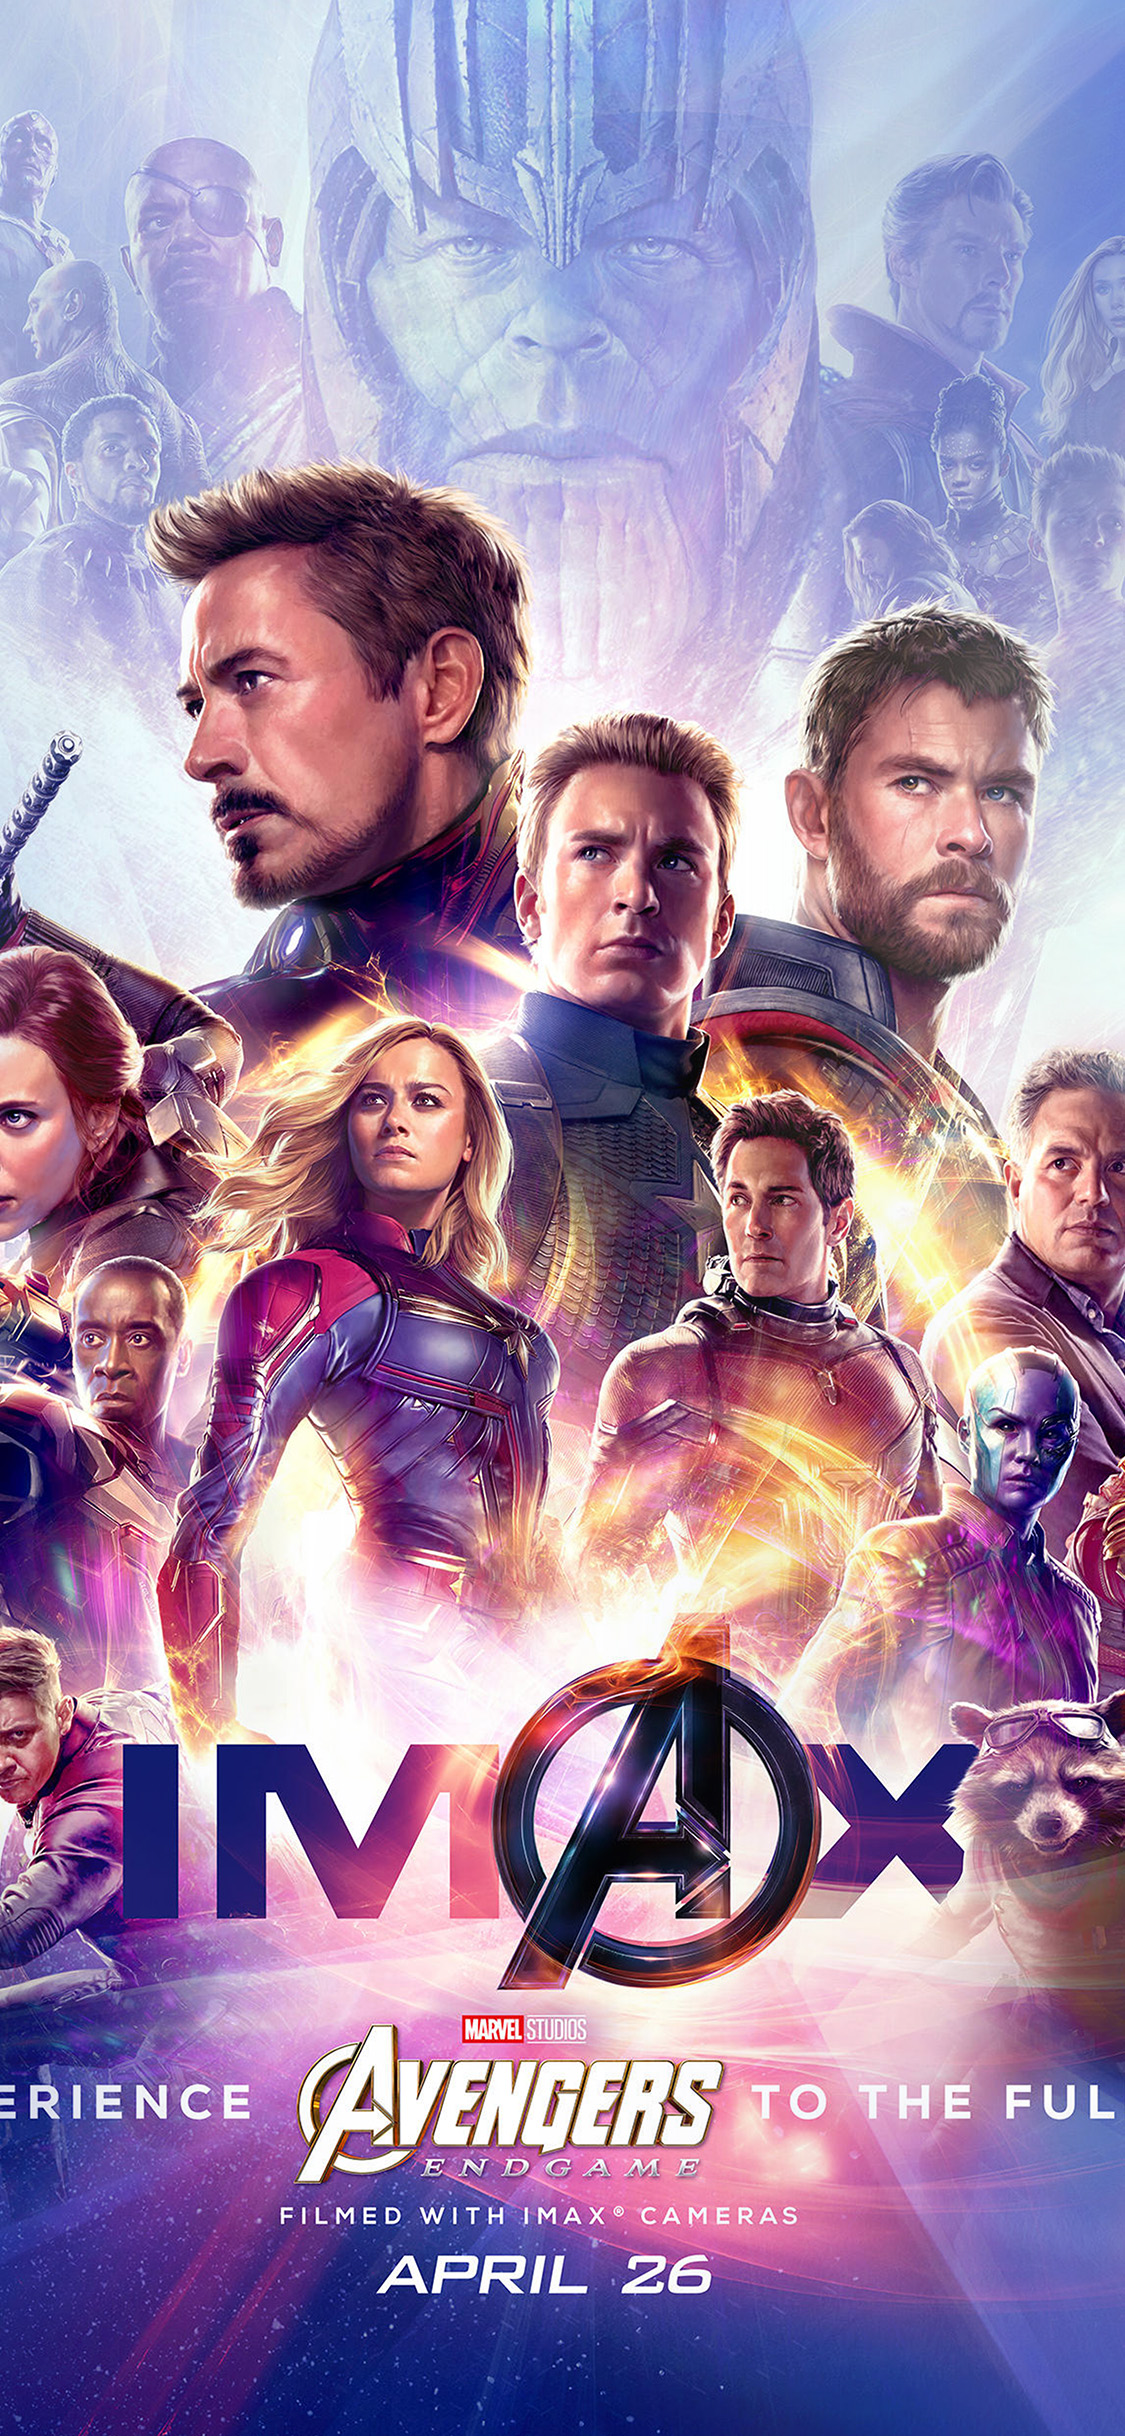 Papersco Iphone Wallpaper Bi65 Marvel Poster Avengers Endgame